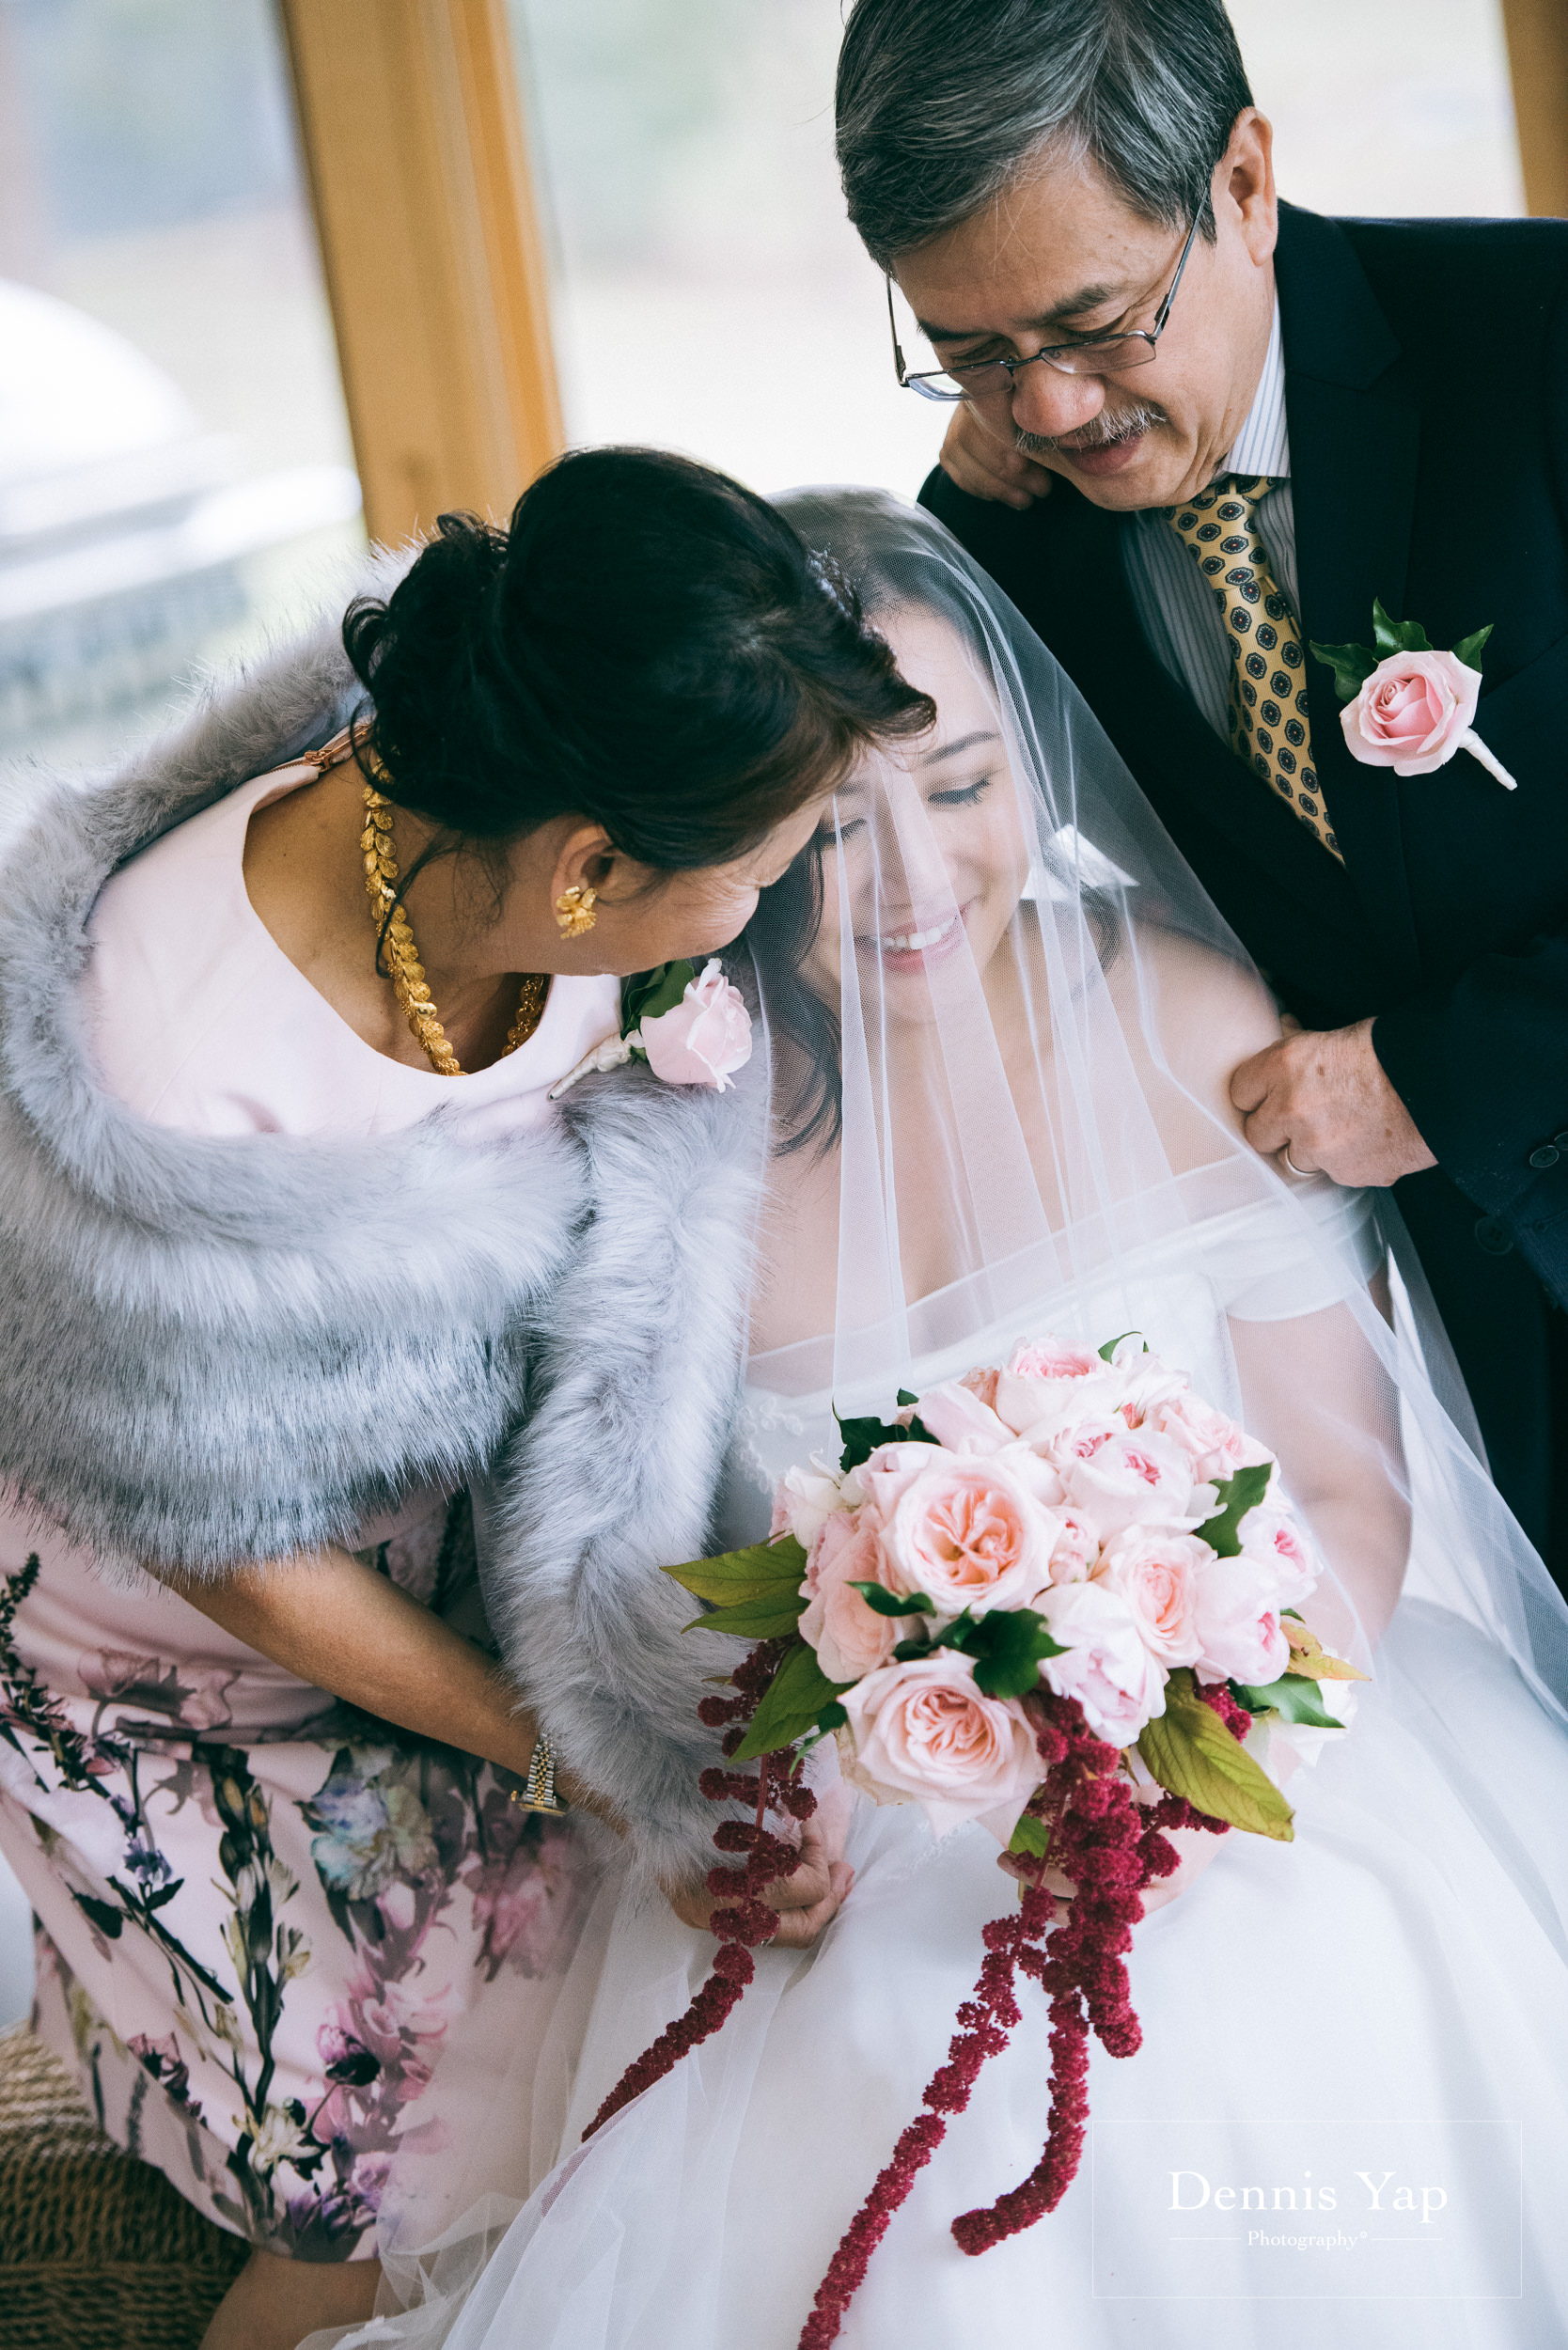 tony daphne wedding day melbourne RACV dennis yap photography malaysia top photographer beloved real moments-26.jpg